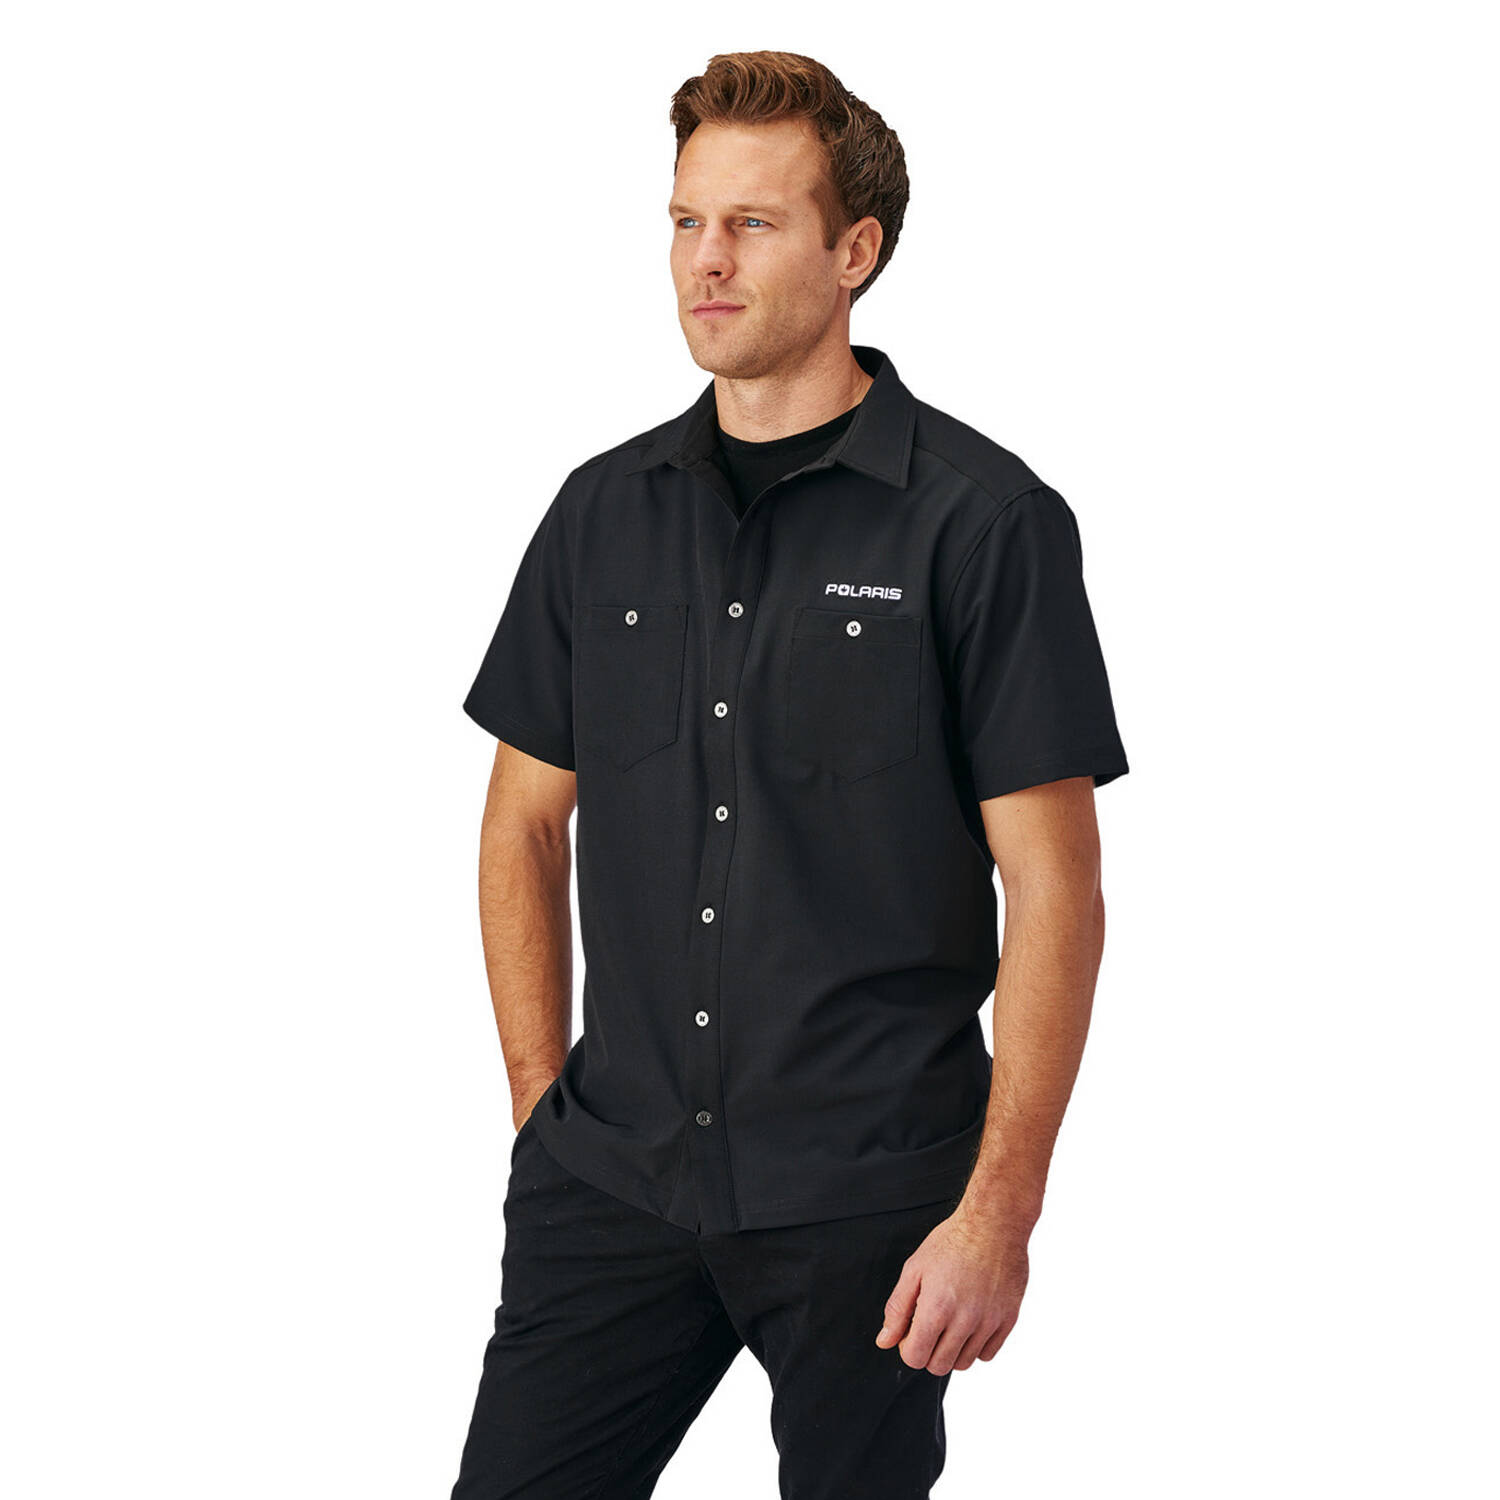 Men's Short-Sleeve Tech Pit Shirt with Logo, Black